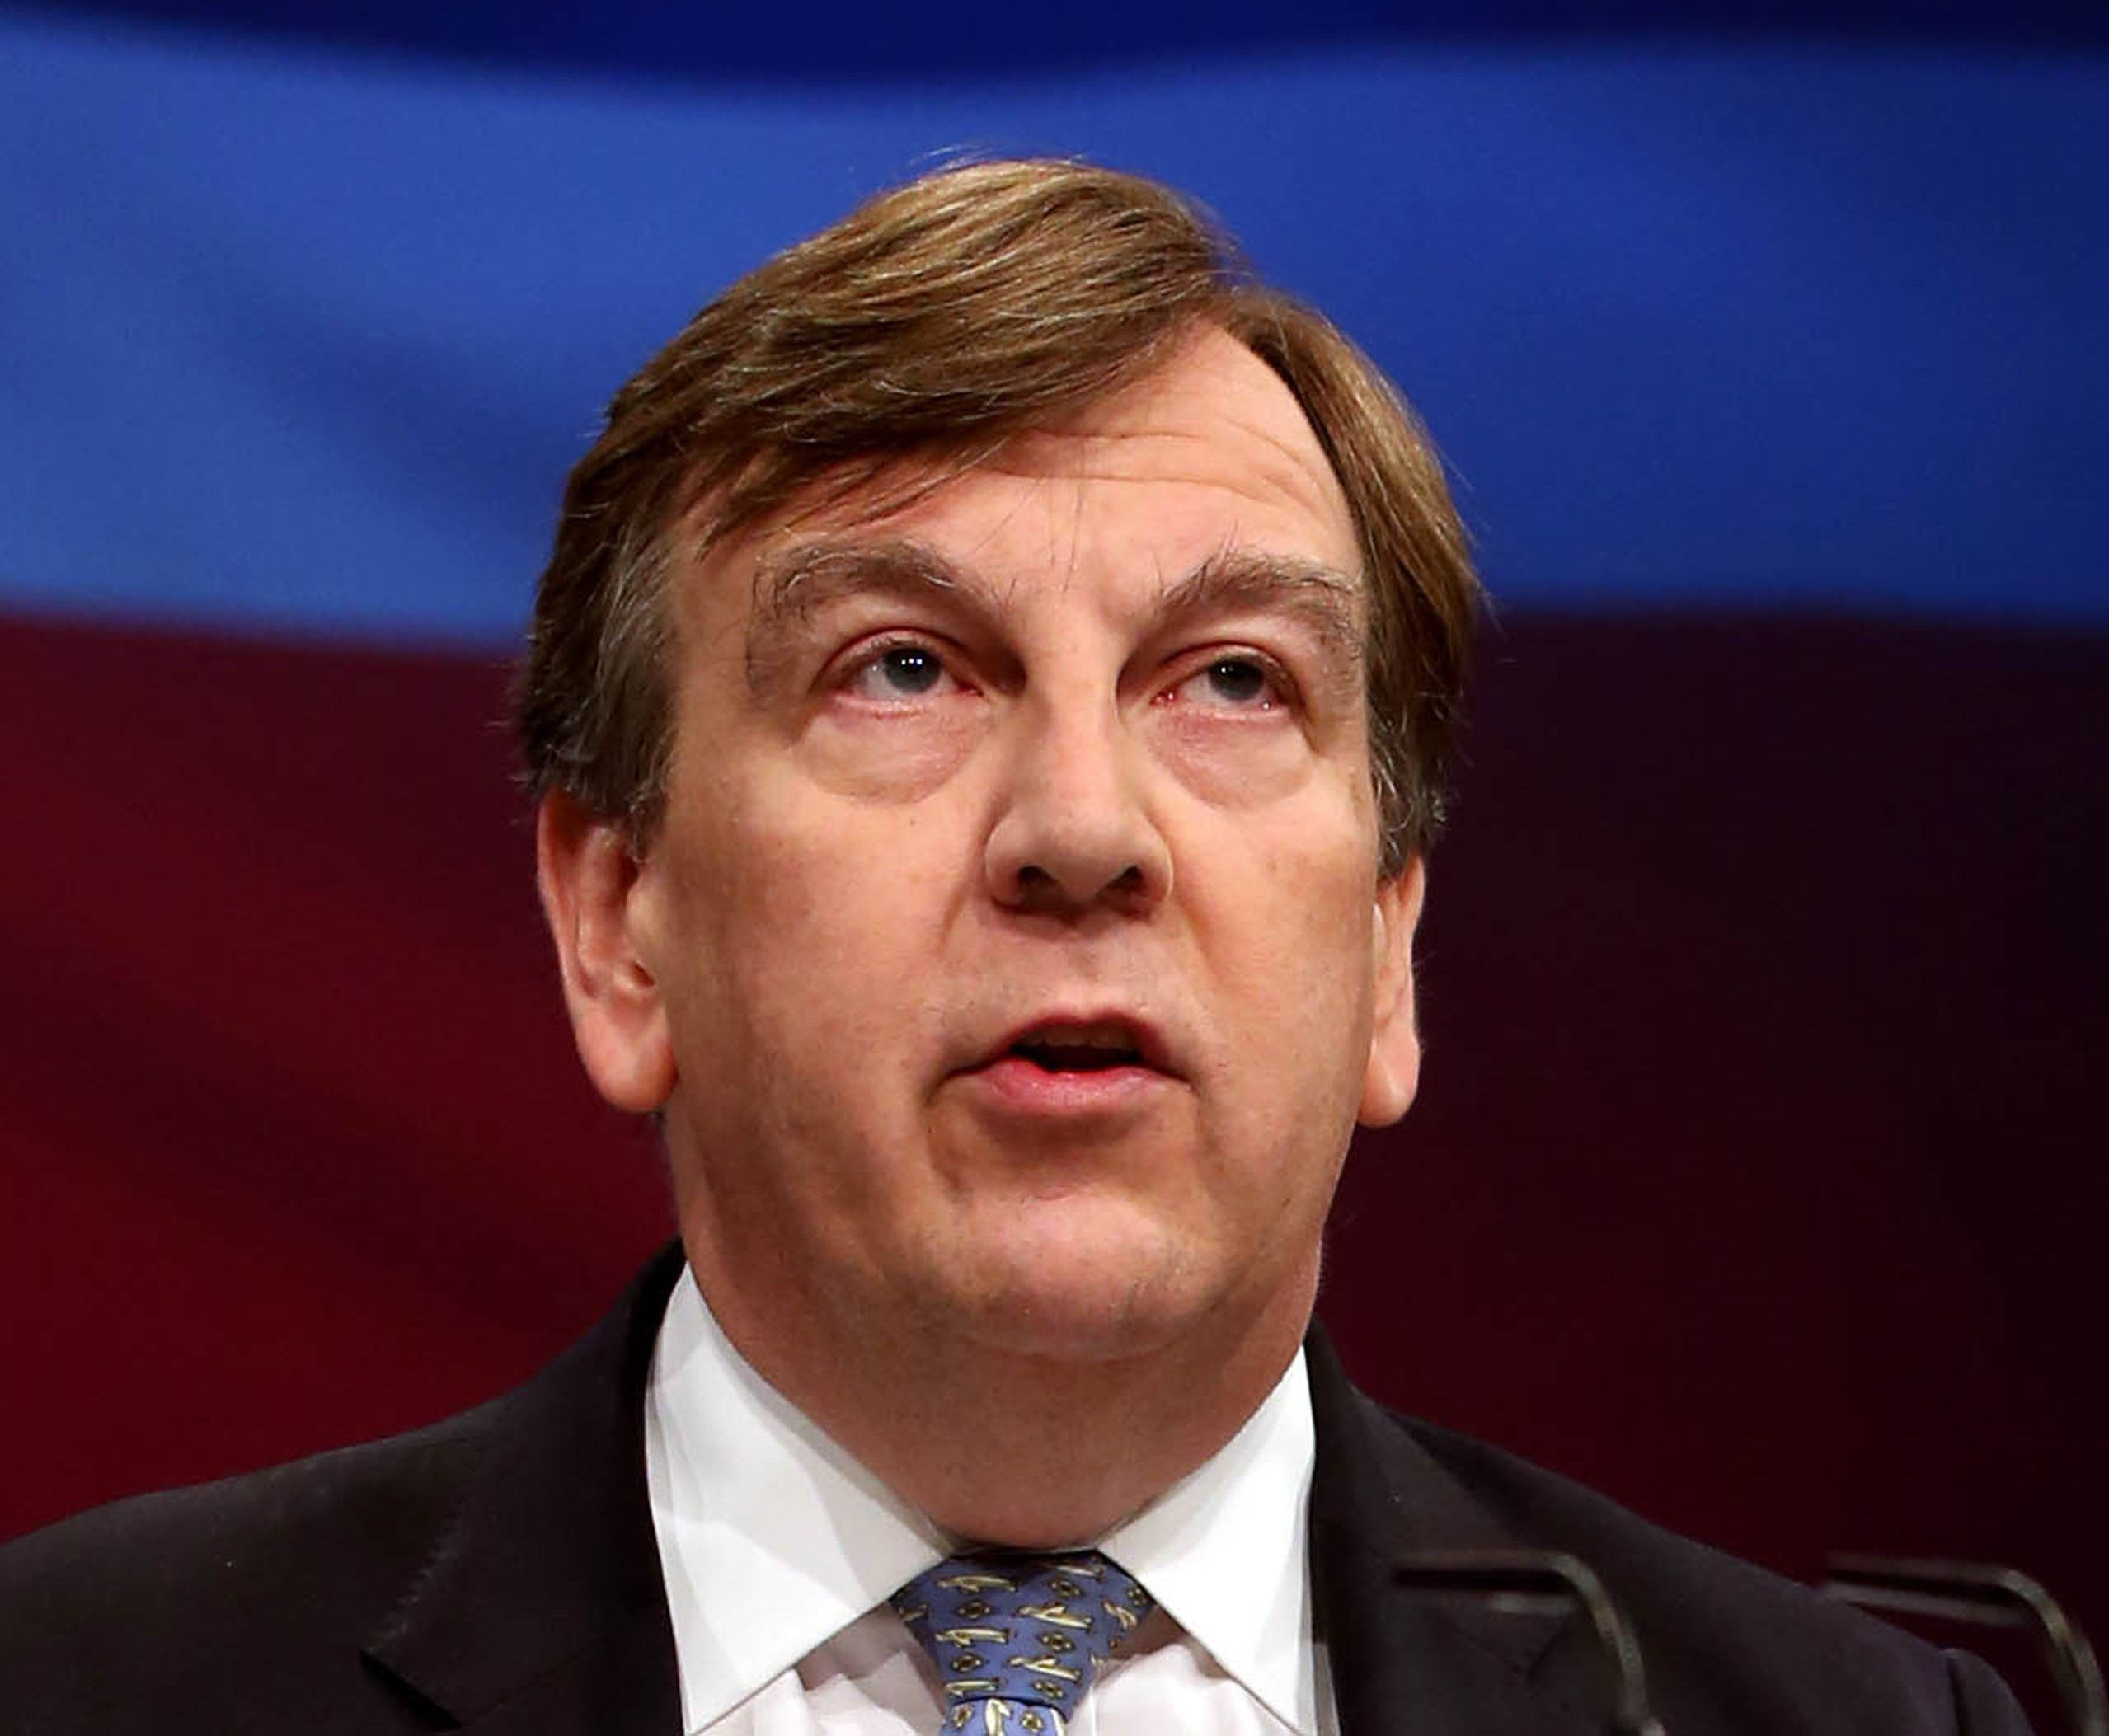 Whittingdale Attacks 'Draconian' Concept Of Imposing Costs On Press Even If They Win Legal